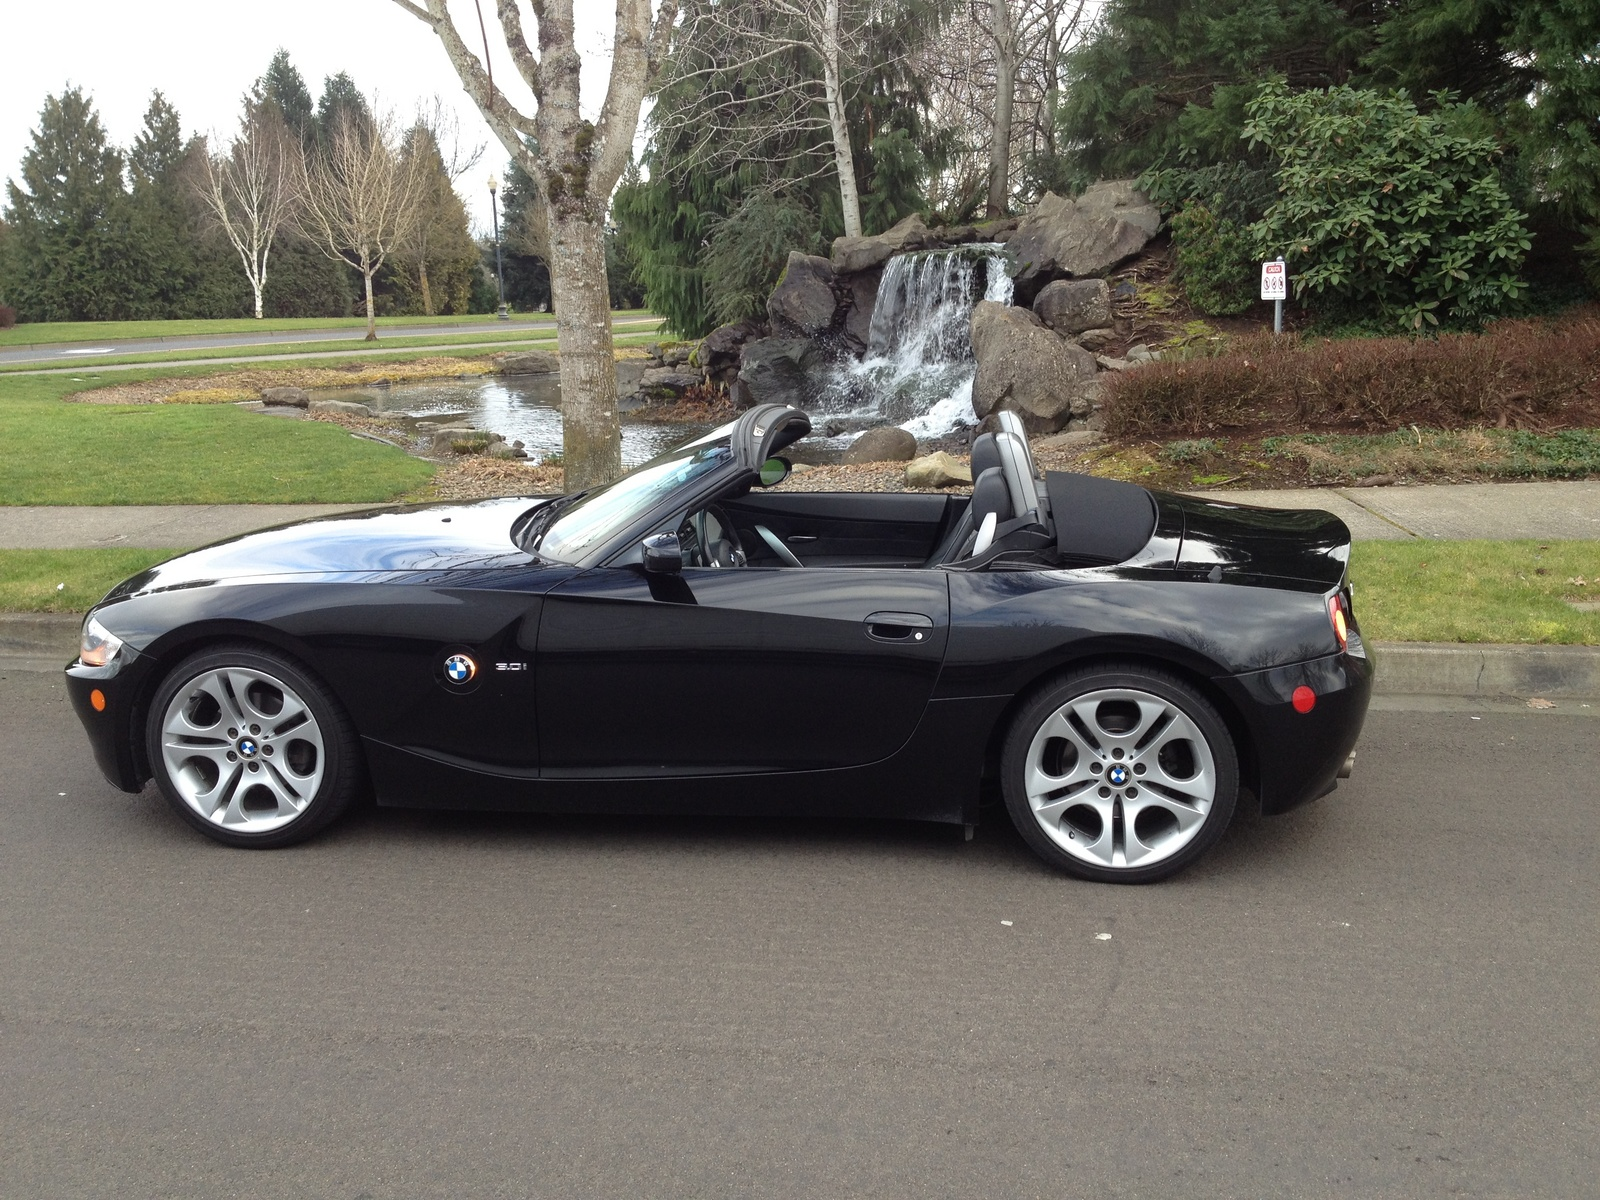 2006 BMW Z4 - Pictures - CarGurus